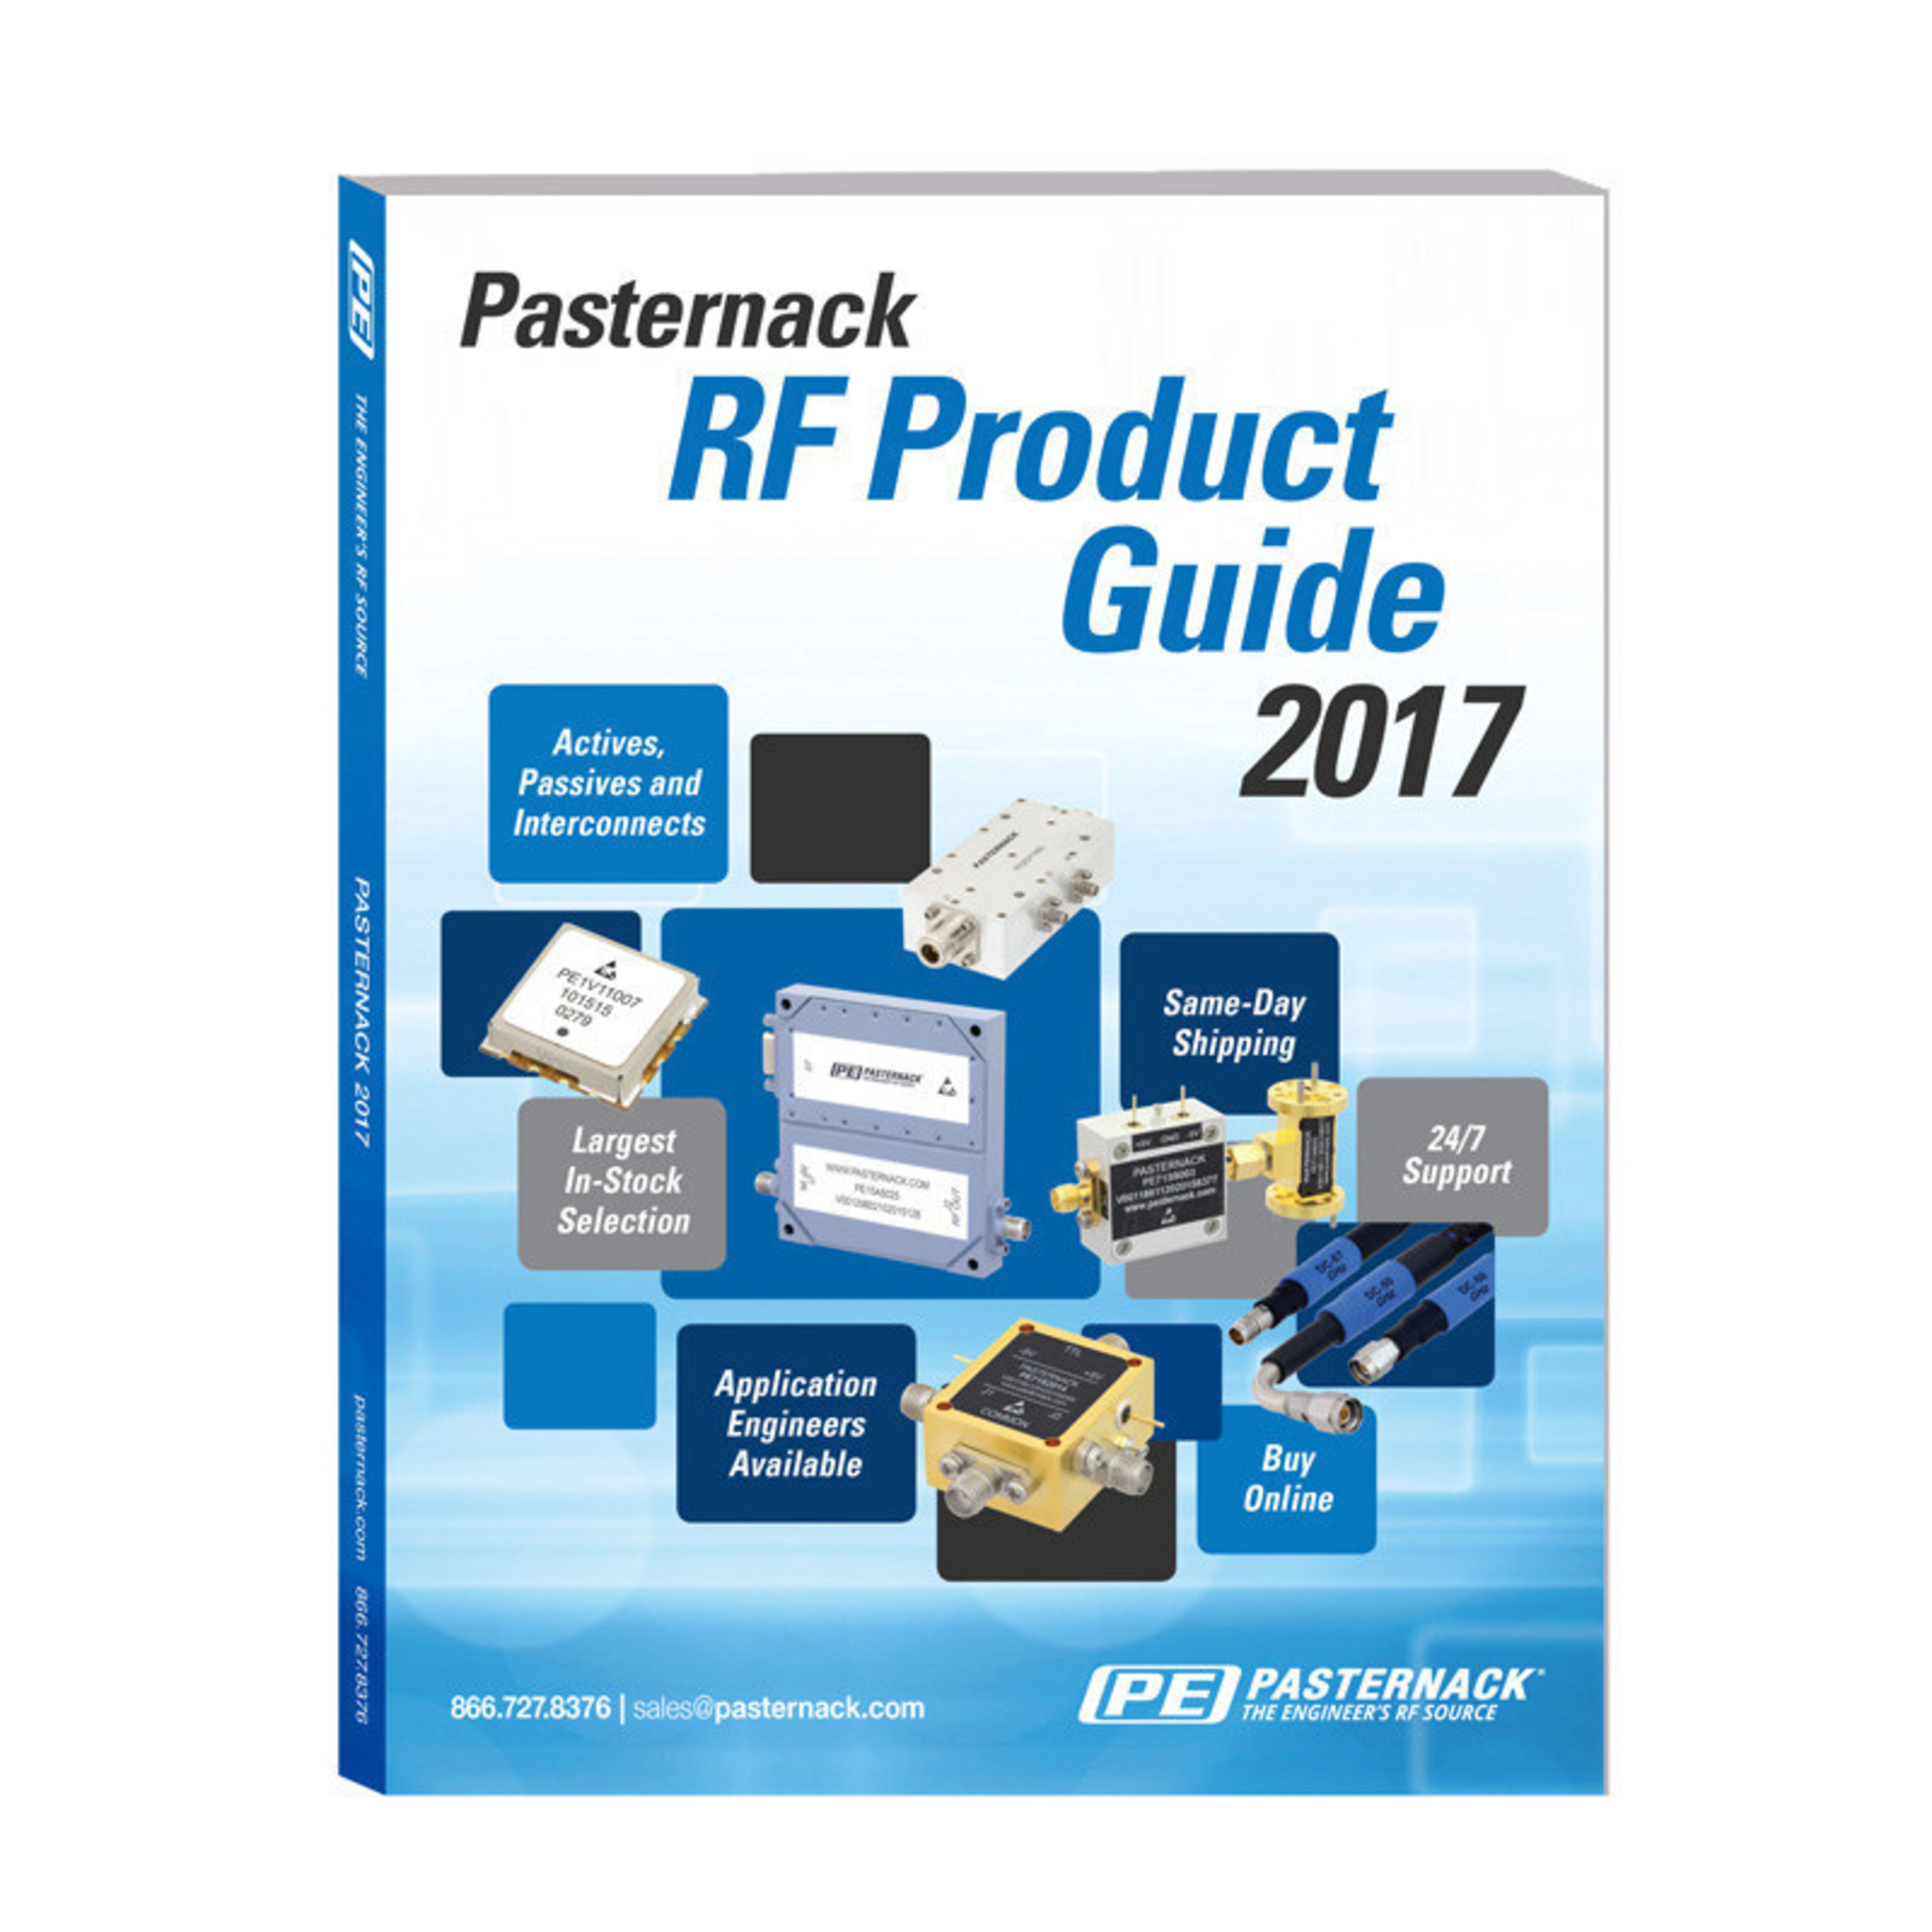 Pasternack Publishes New 2017 RF Product Guide Which is Available Now